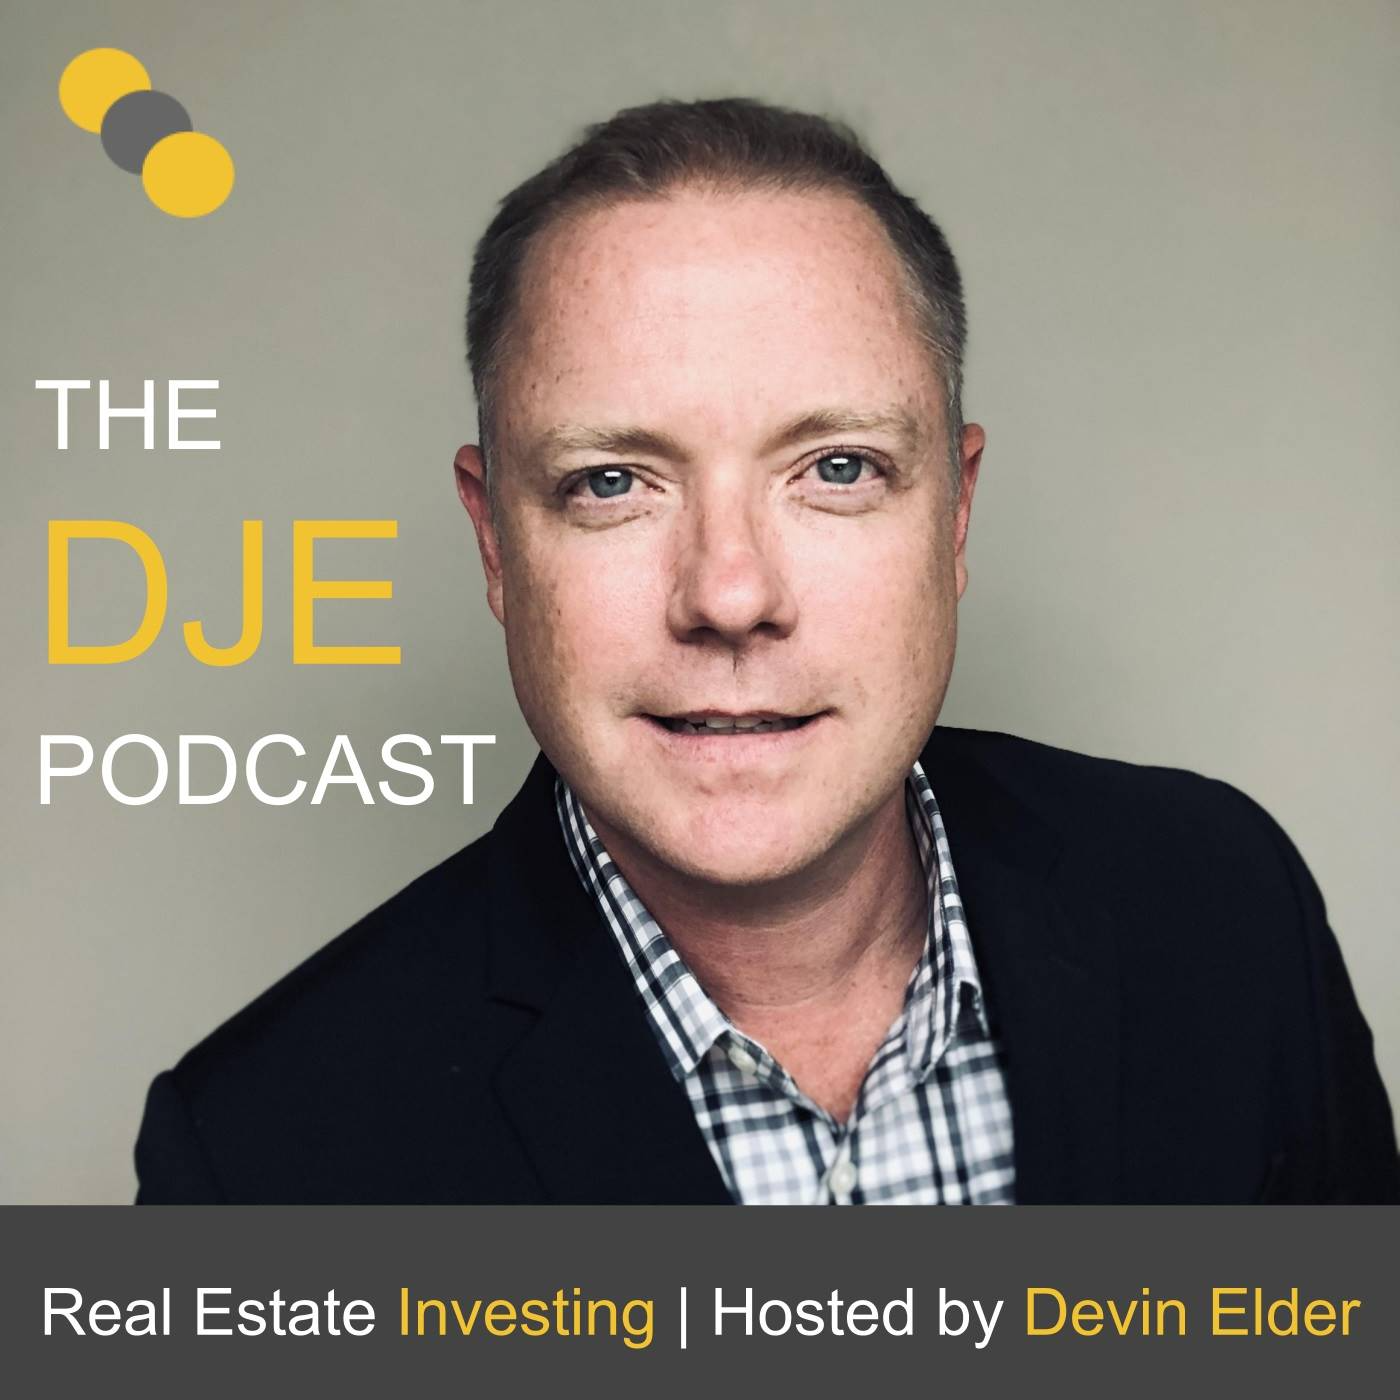 The DJE Podcast - Real Estate Investing with Devin Elder